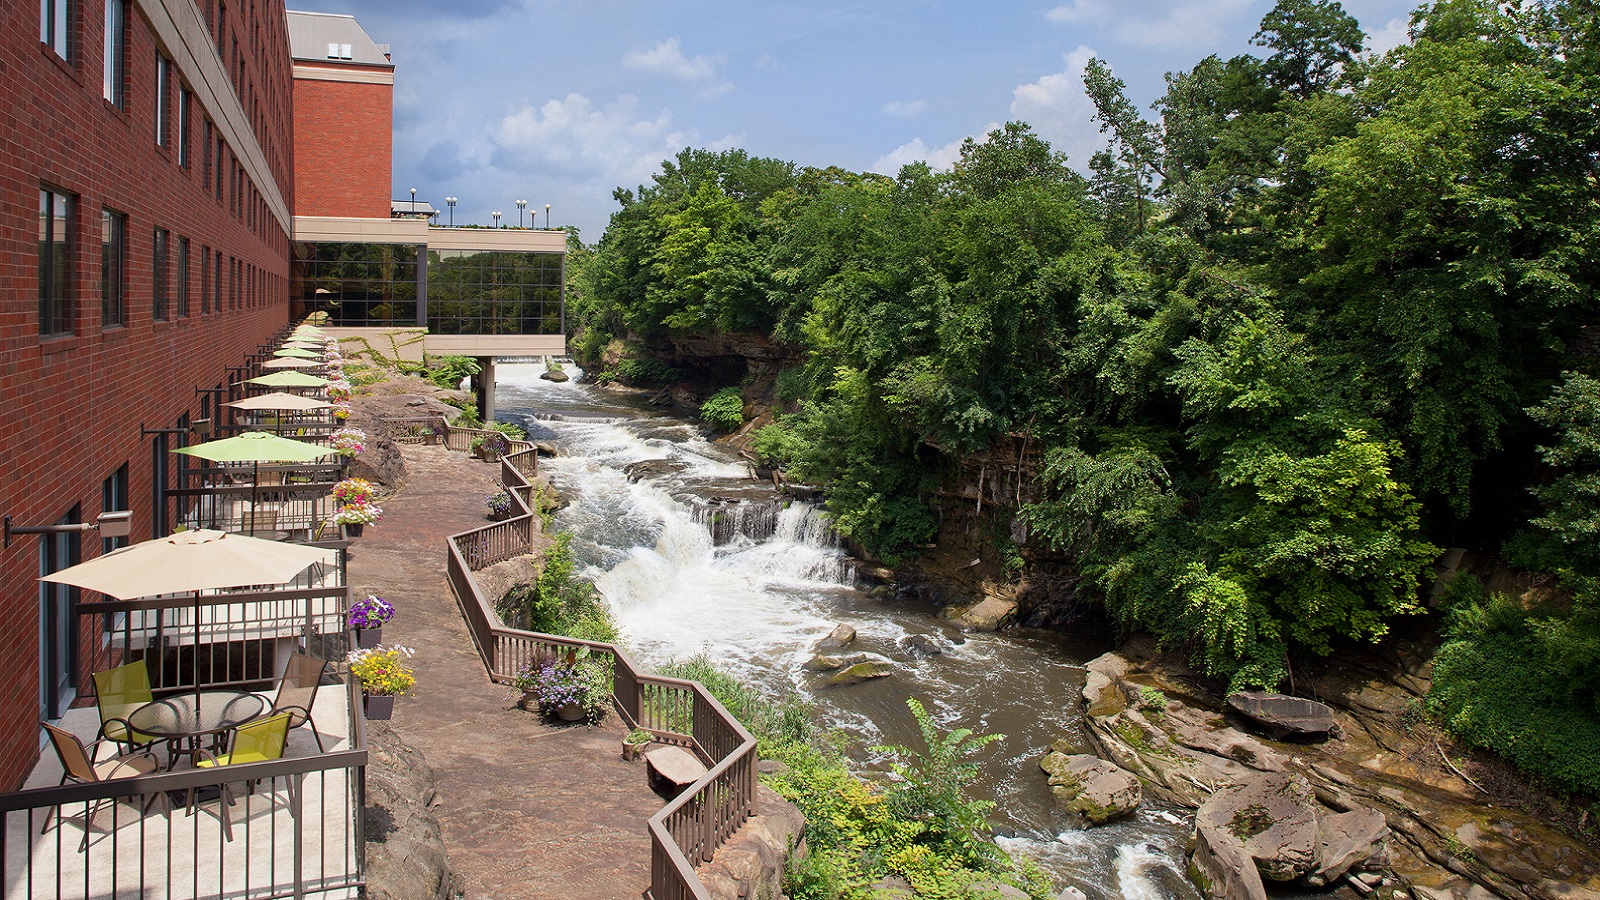 Sheraton Suites Akron Cuyahoga Falls - River View